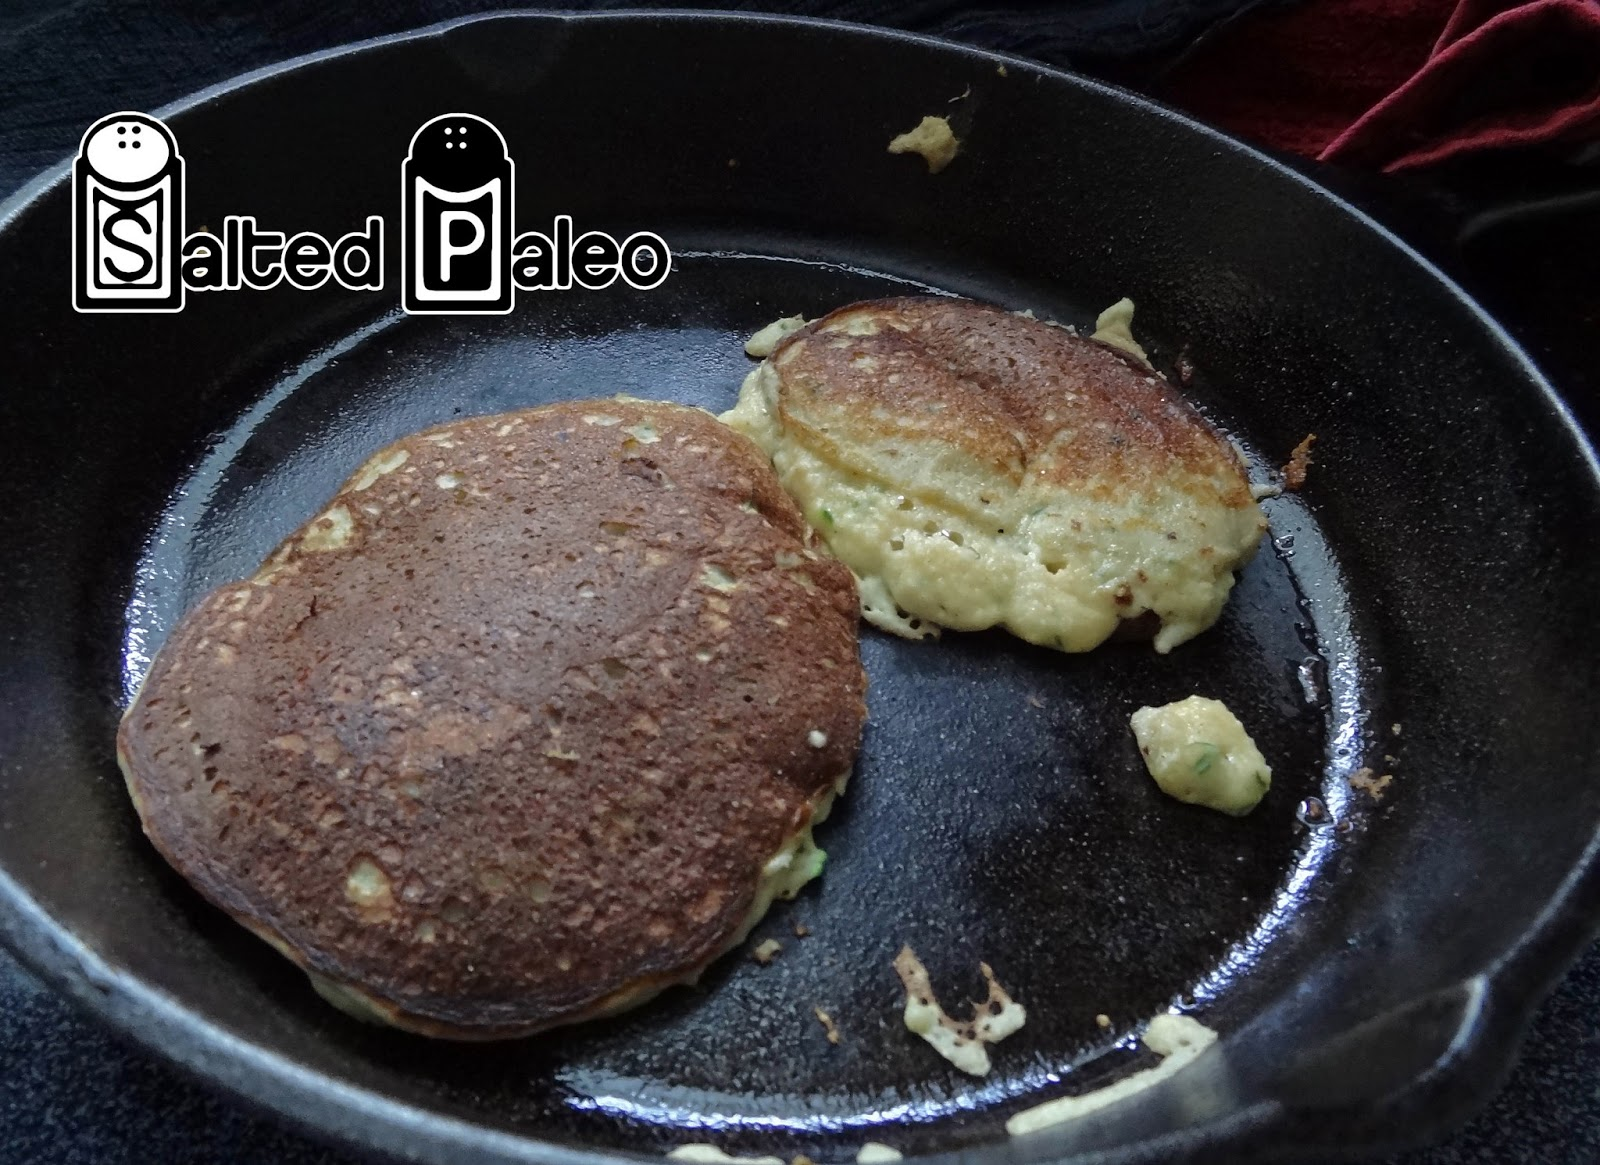 Salted Paleo Zucchini Paleo Pancakes Made With Coconut